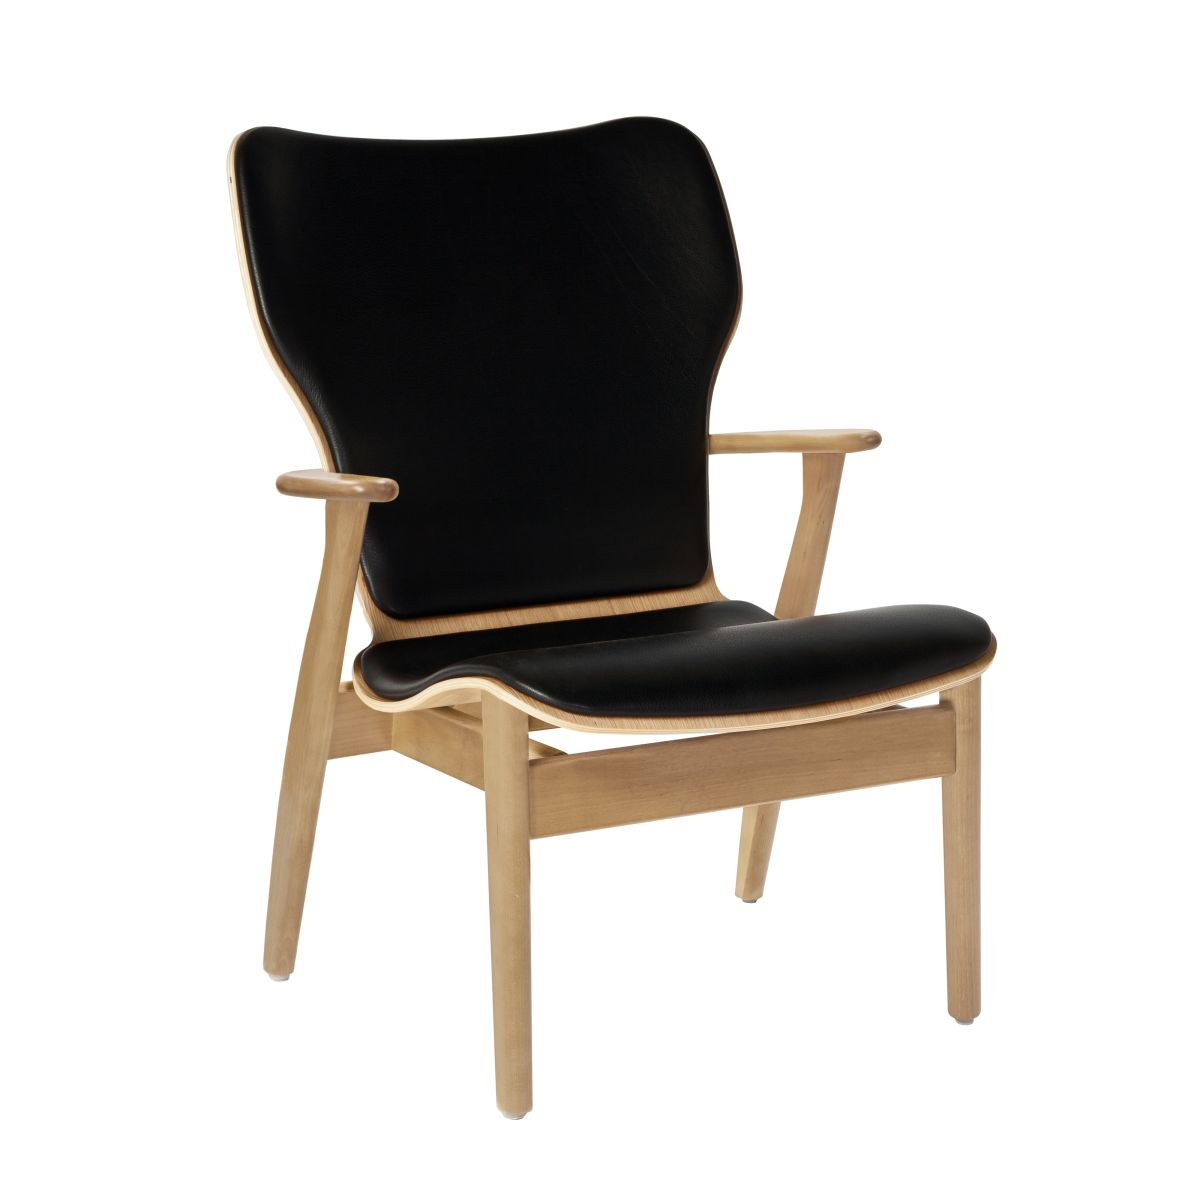 Domus Lounge Chair clear laquered birch_leather upholstery